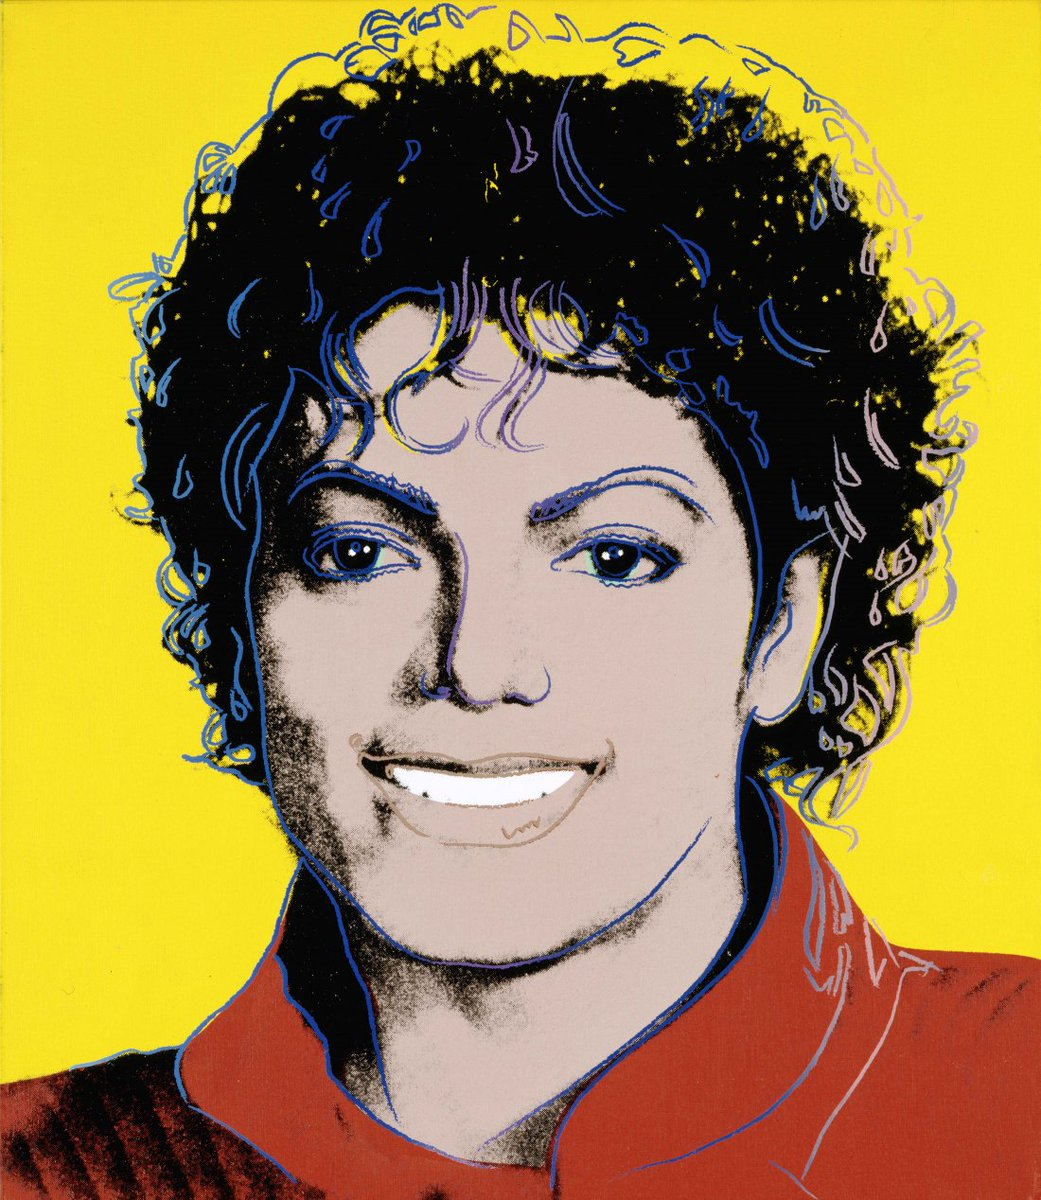 TIME Magazine commissioned Andy Warhol to paint a portrait for its March 1984 cover story on Michael Jackson. That portrait now hangs in the National Portrait Gallery, part of the Smithsonian Institution. It is one of the most respected art museums in the world. #MJLegacy